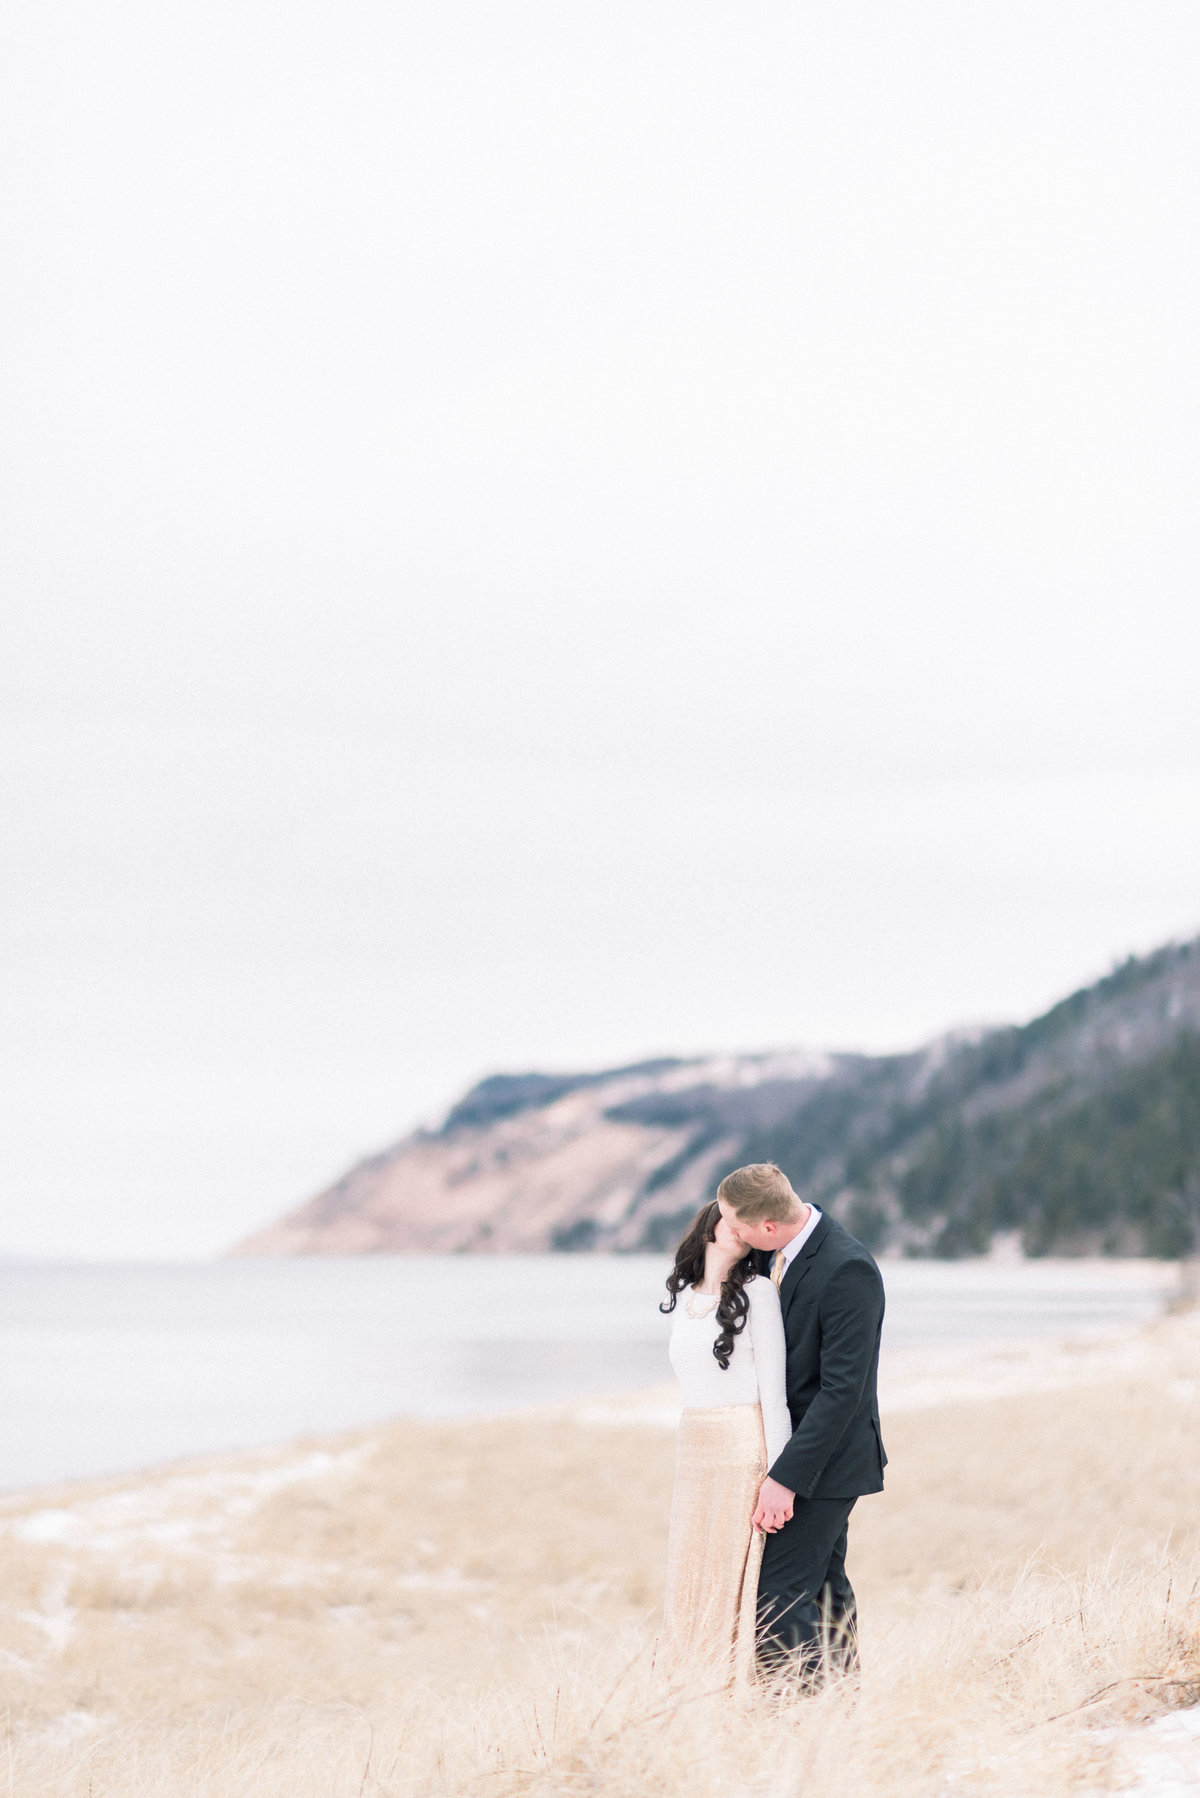 Traverse City beach engagement photographer